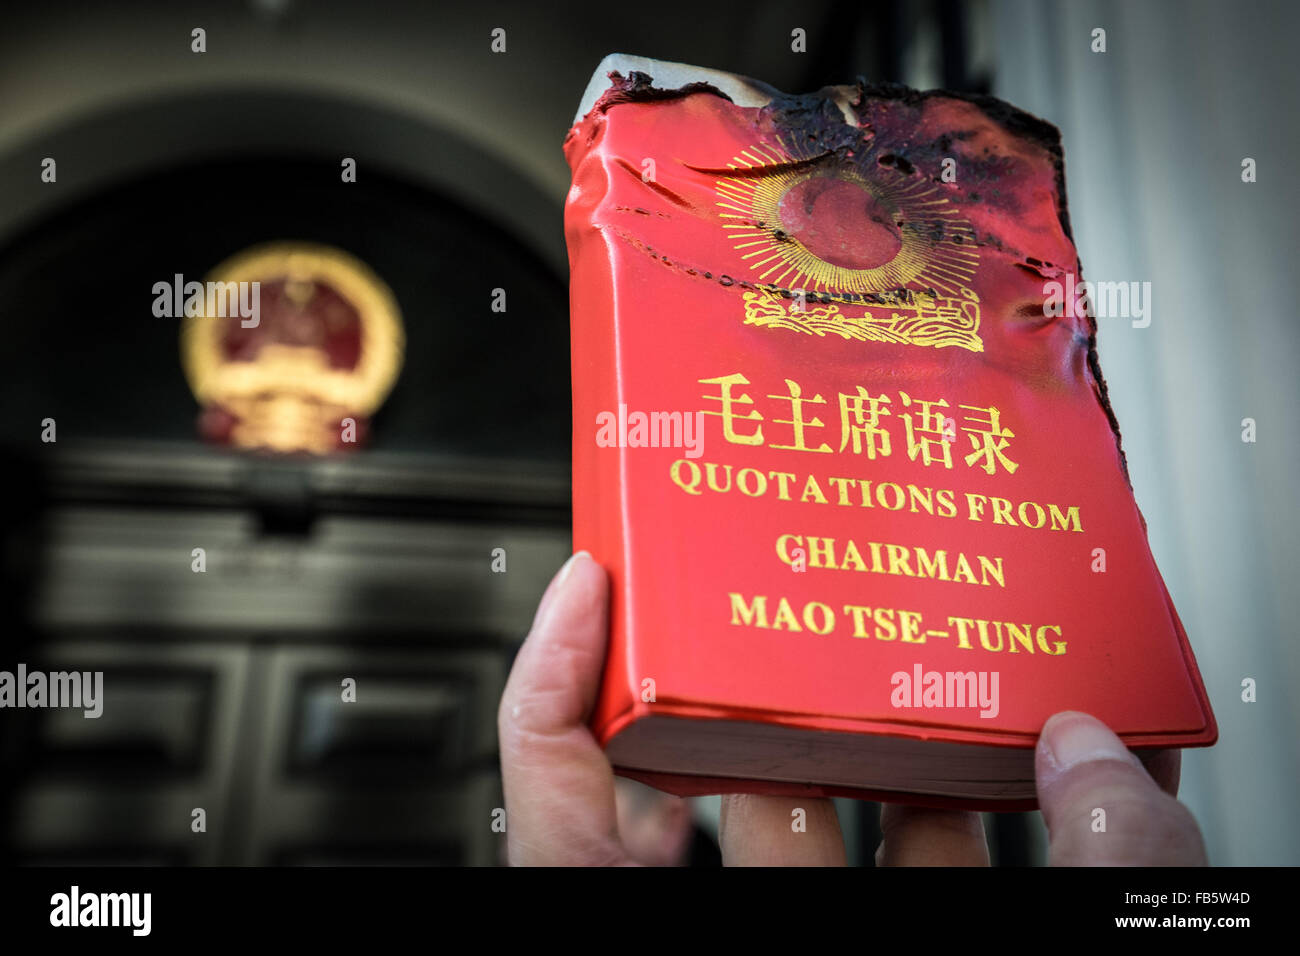 London, UK. 10th January, 2016. A protester holds up a partly burnt copy of 'Quotations from Chairman Mao Tse-tung' Stock Photo